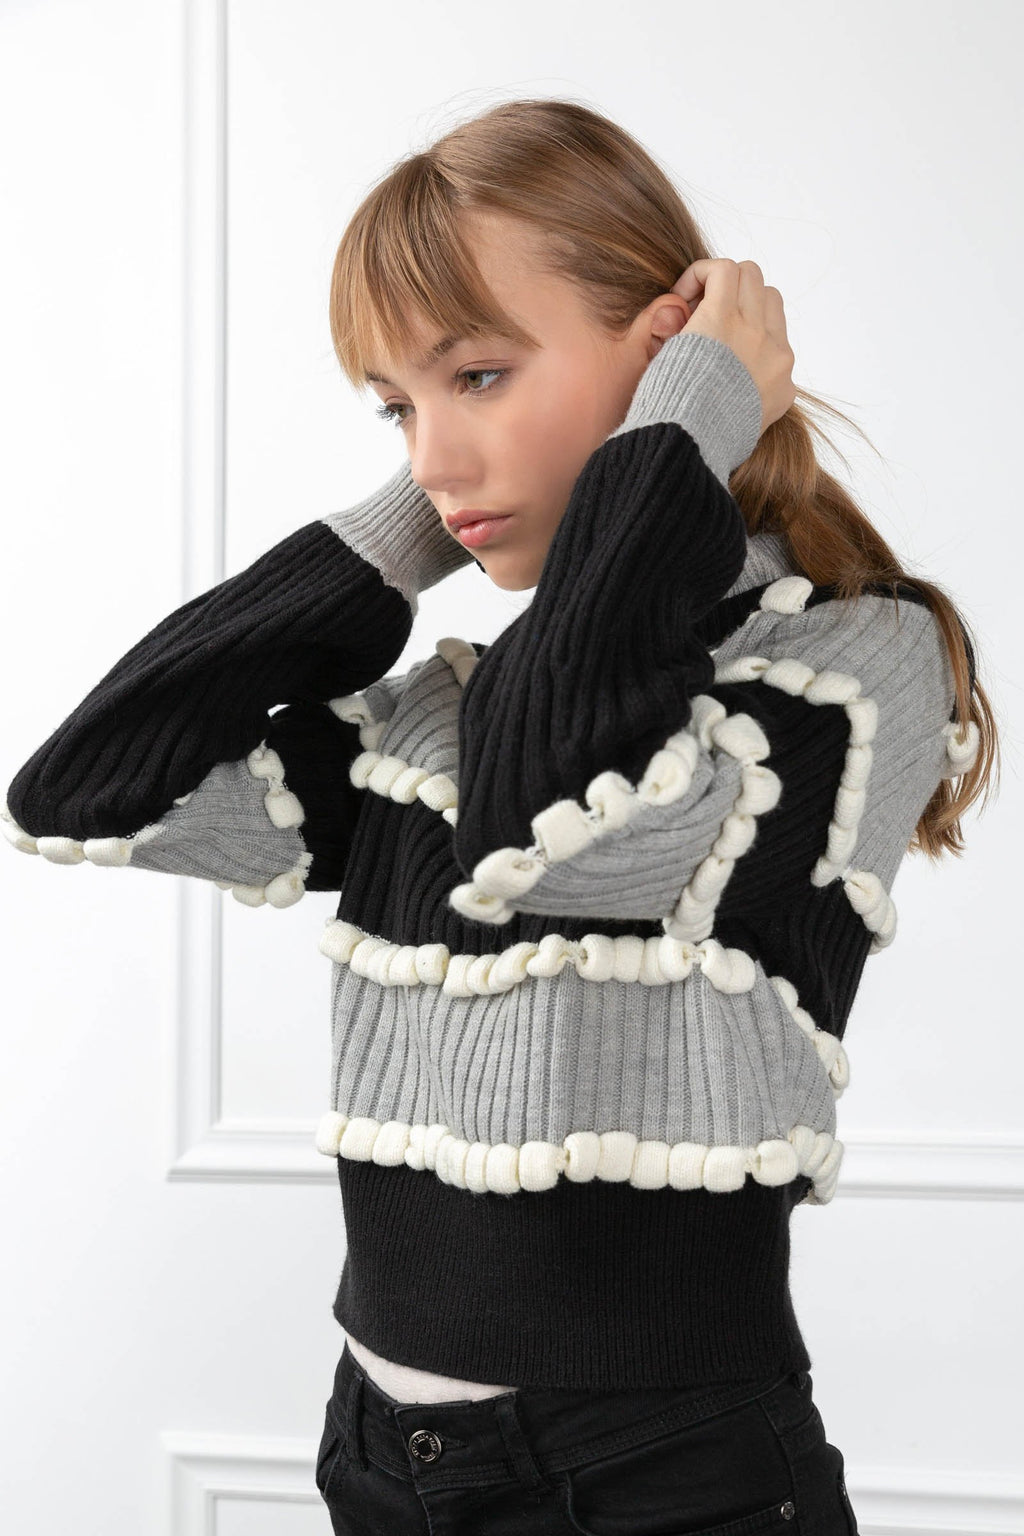 Reyla Sweater in Knitwear by J.ING - an L.A based women's fashion line